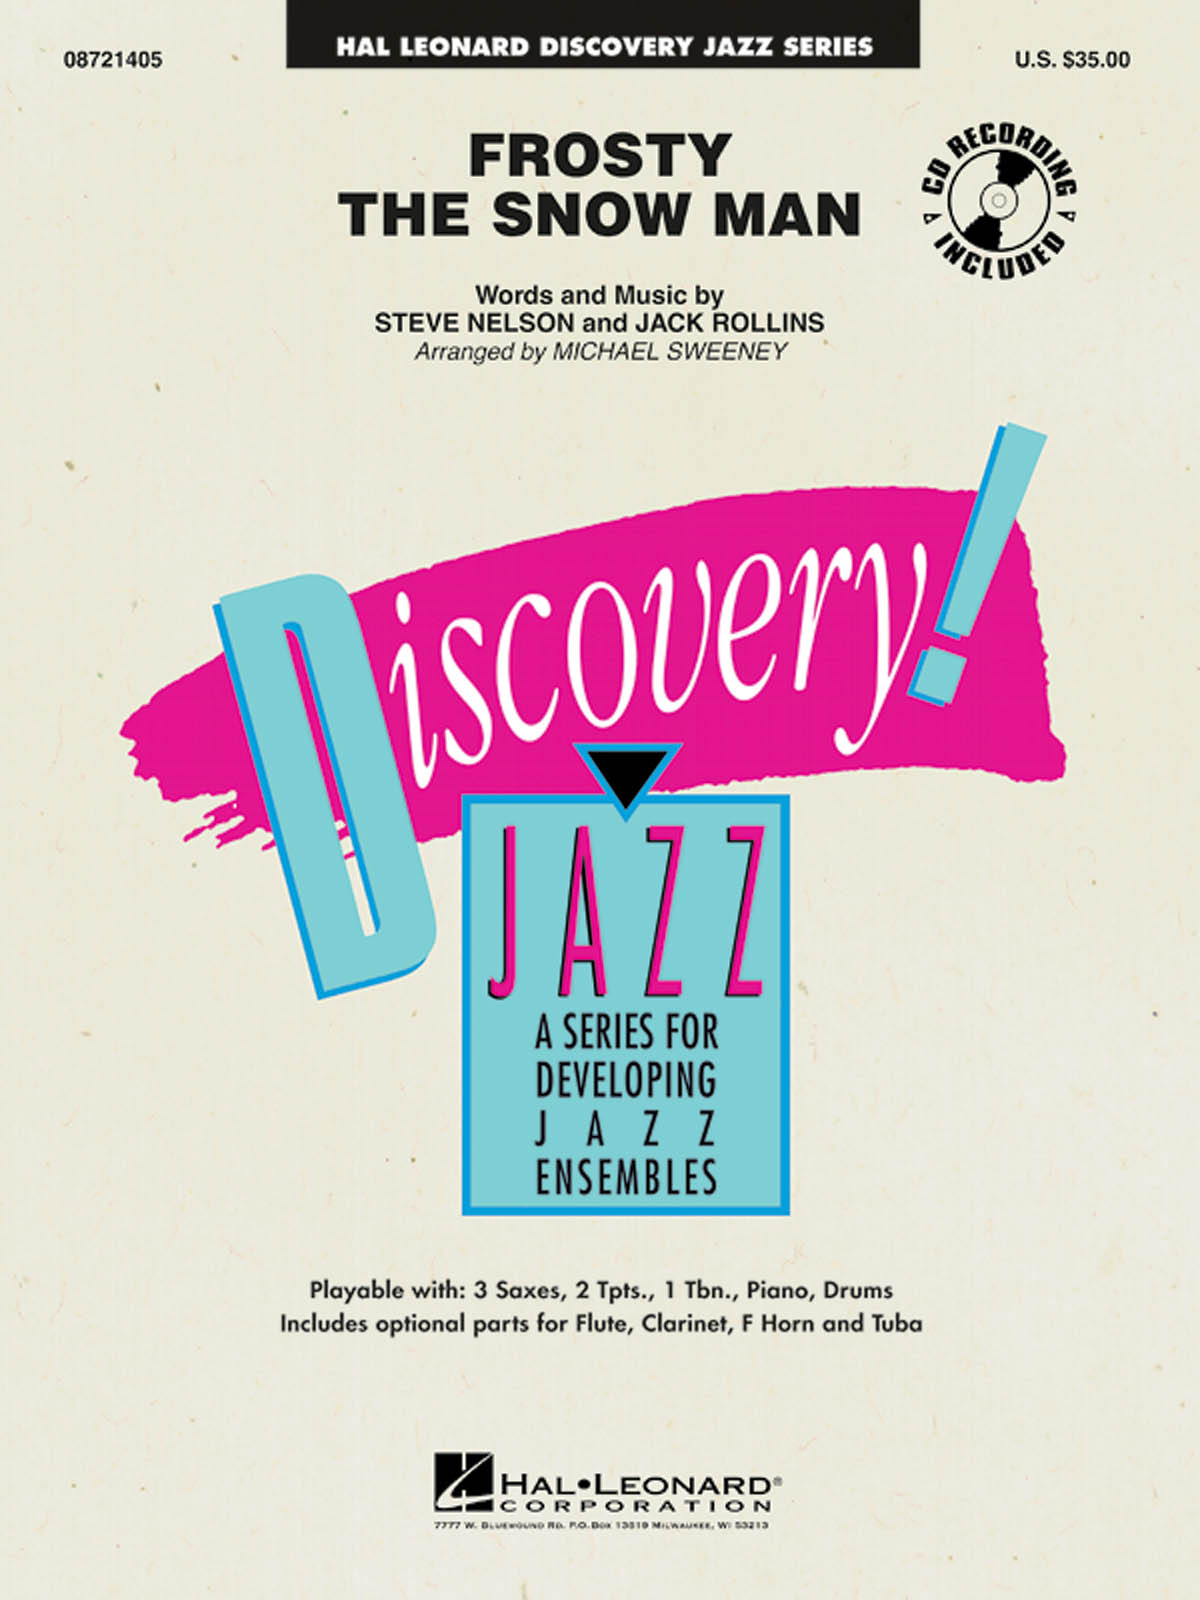 Frosty the Snow Man: Discovery Jazz